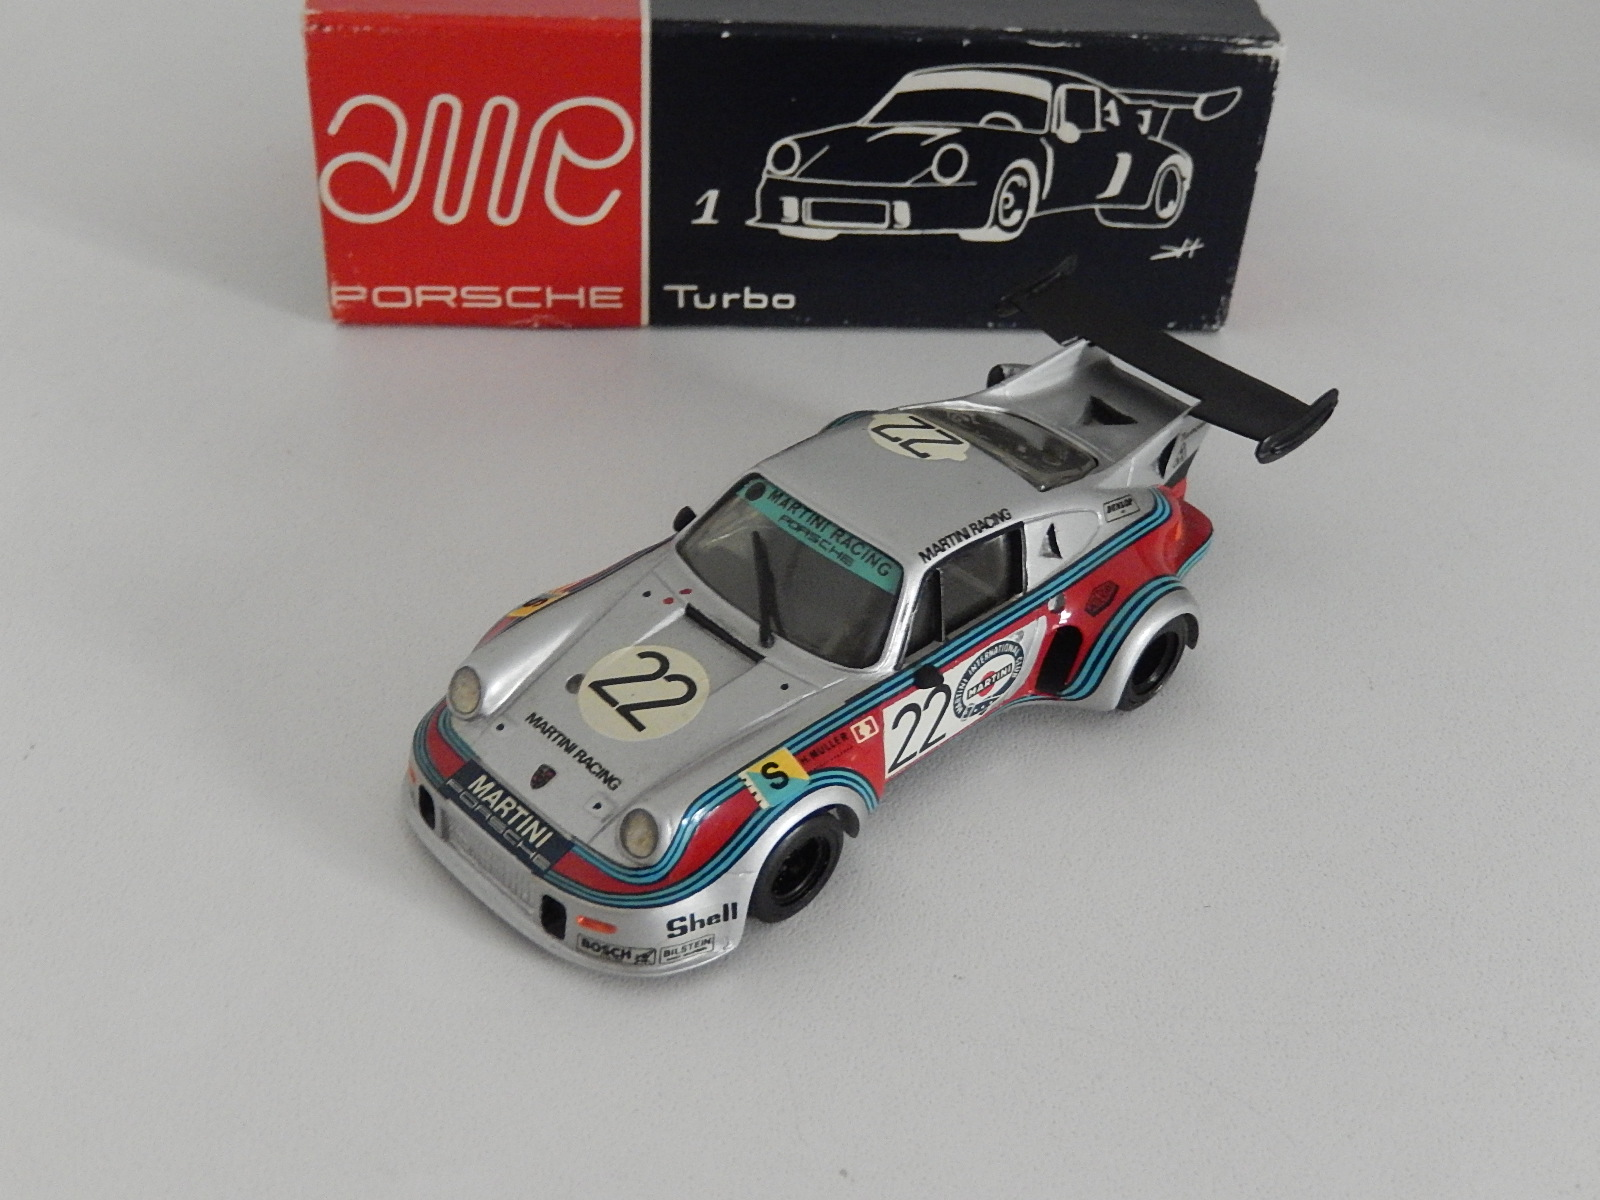 AM Ruf : Porsche 911 Turbo RSR Le MANS 1974